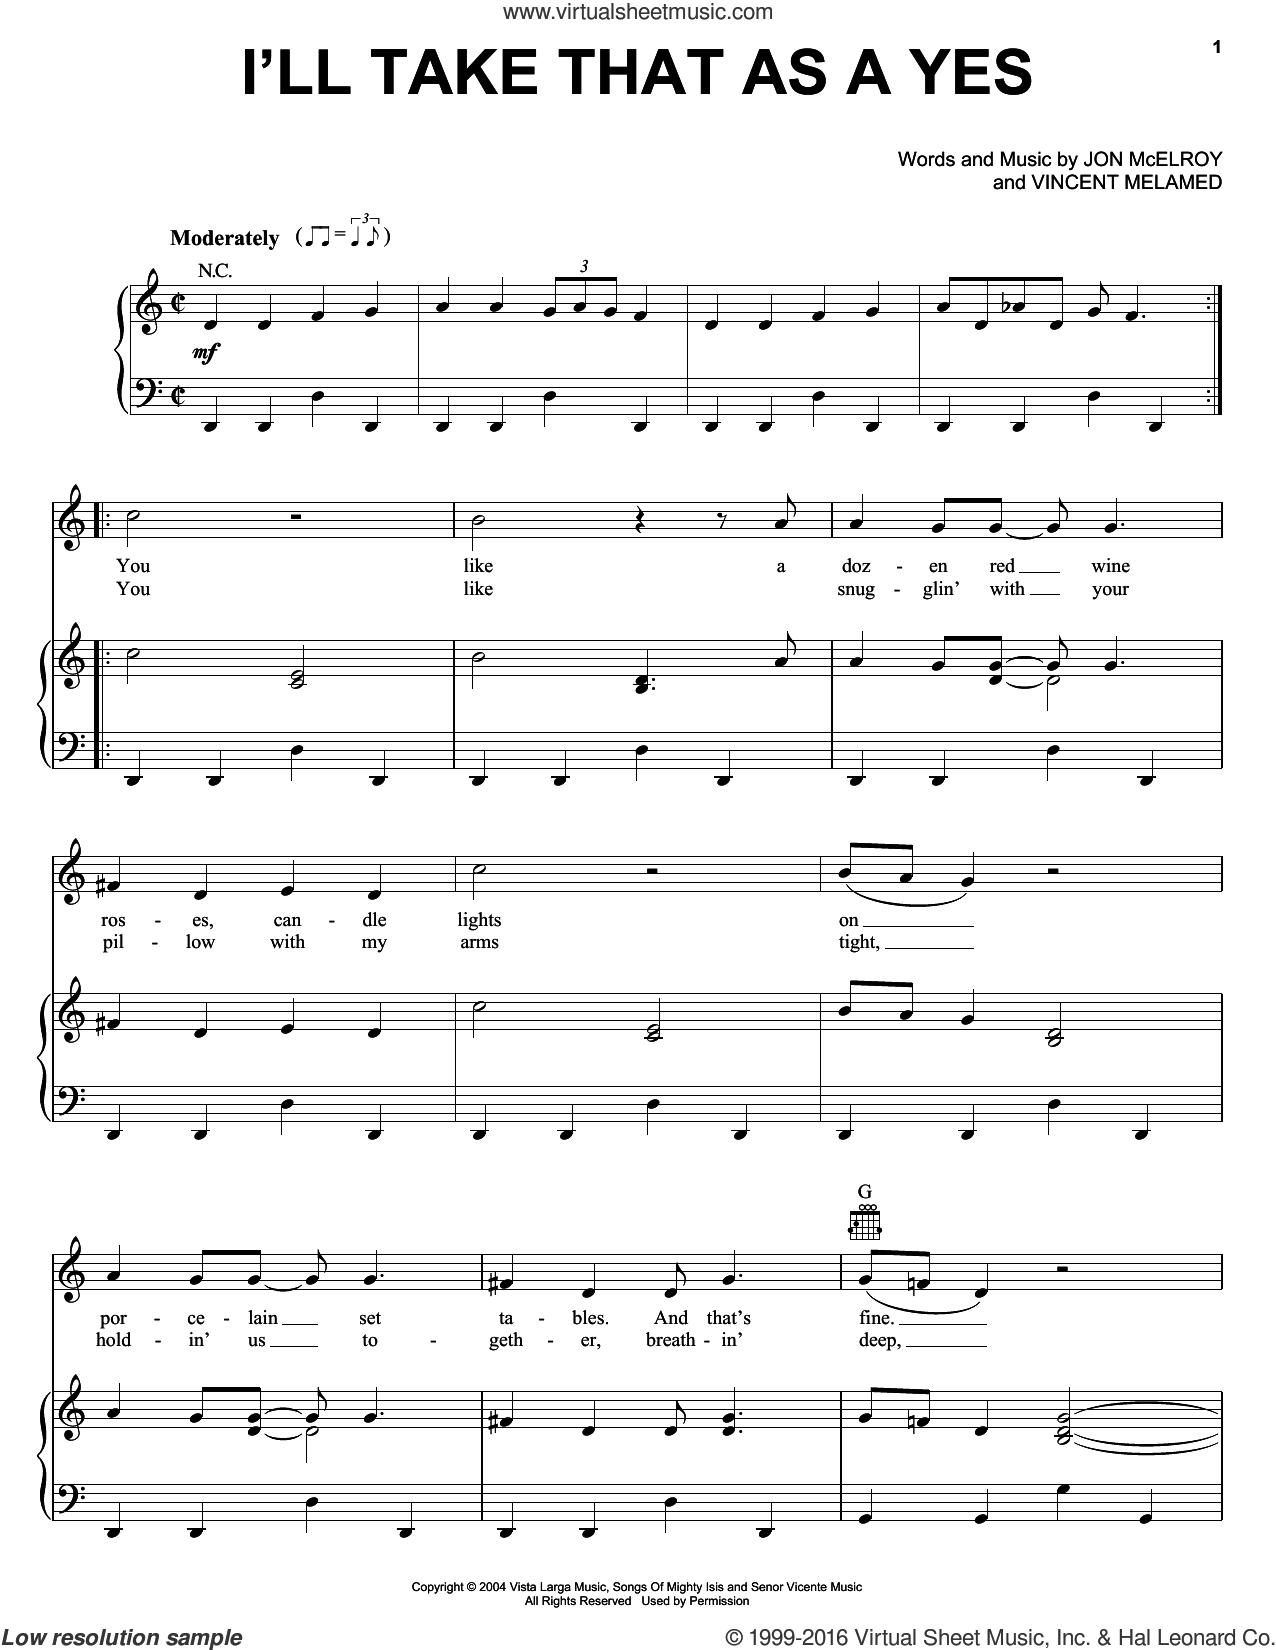 I'll Take That As A Yes sheet music for voice, piano or guitar by Vincent Melamed, Phil Vassar and Jon McElroy. Score Image Preview.